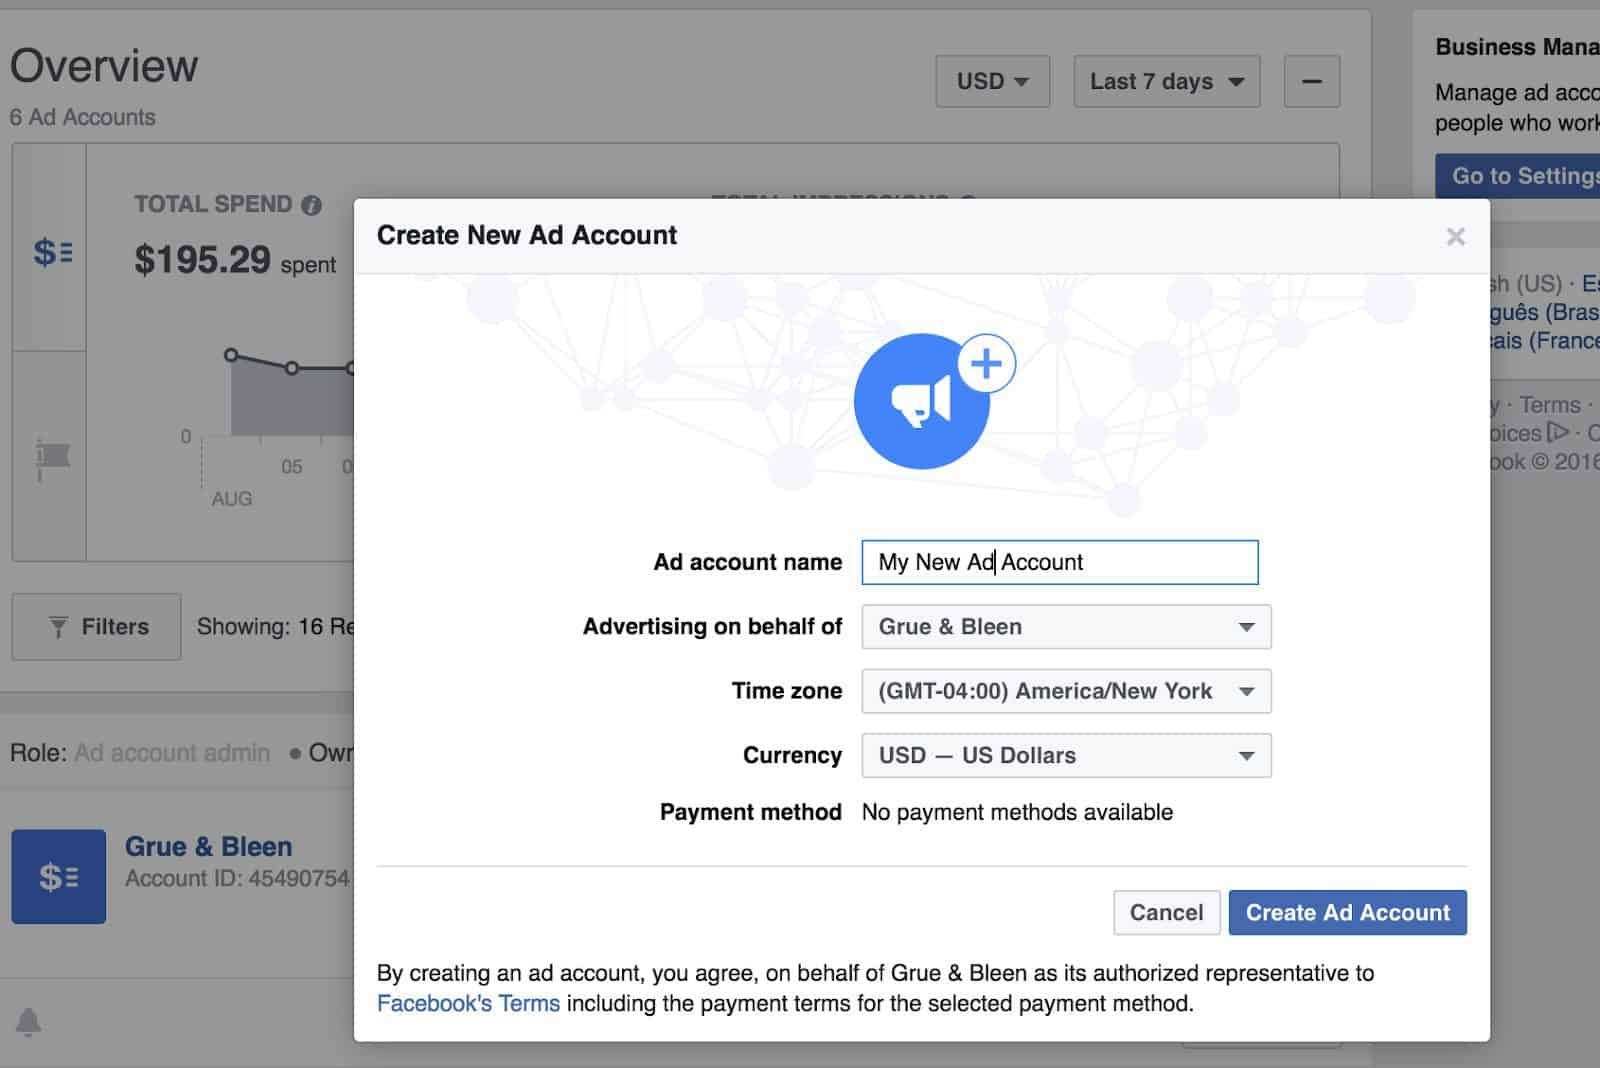 Facebook Business Manager - Add Account Name